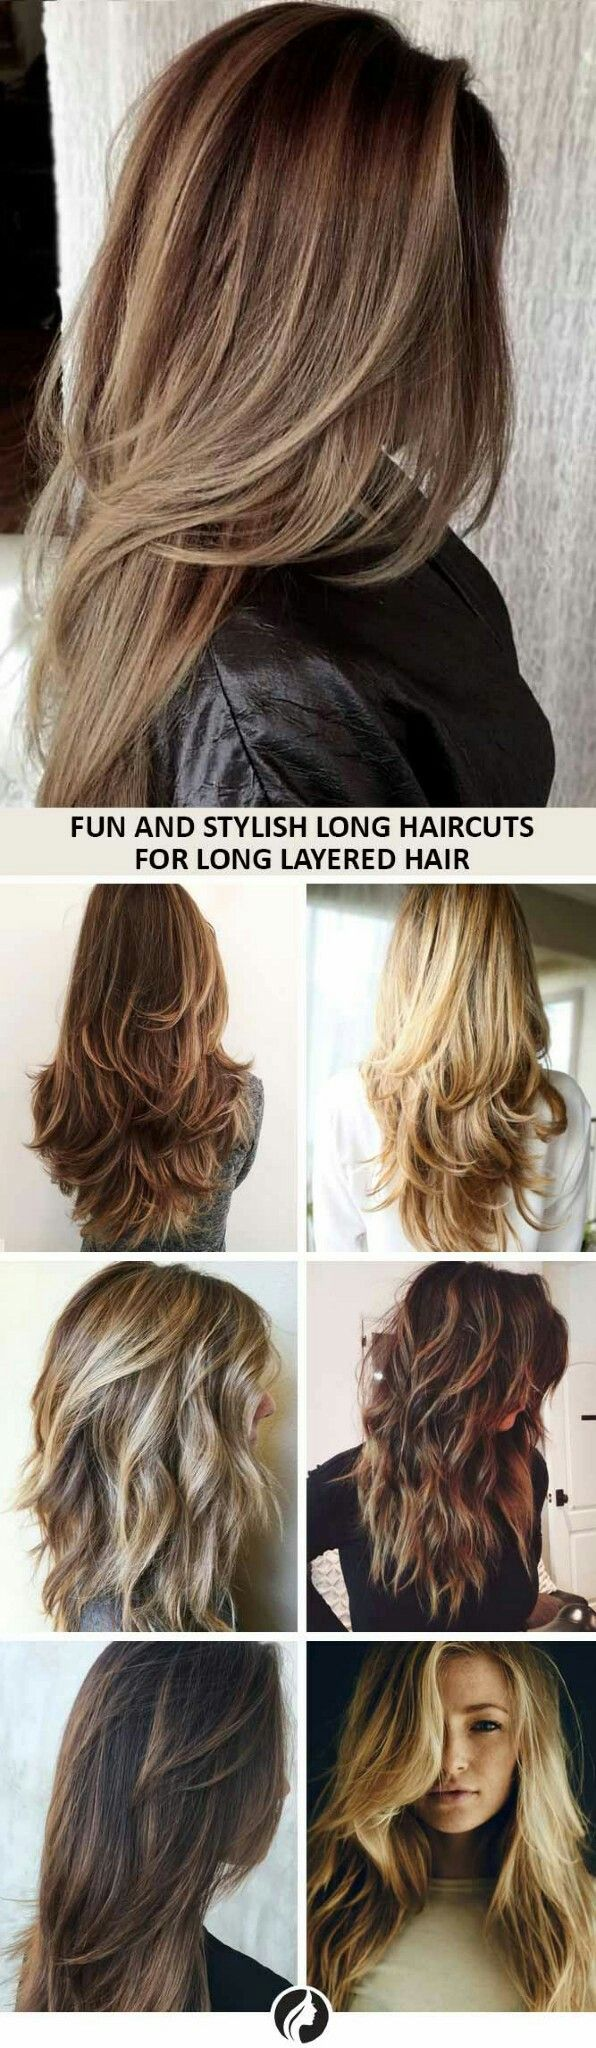 Pin by andrea on hair pinterest hair style haircuts and hair cuts